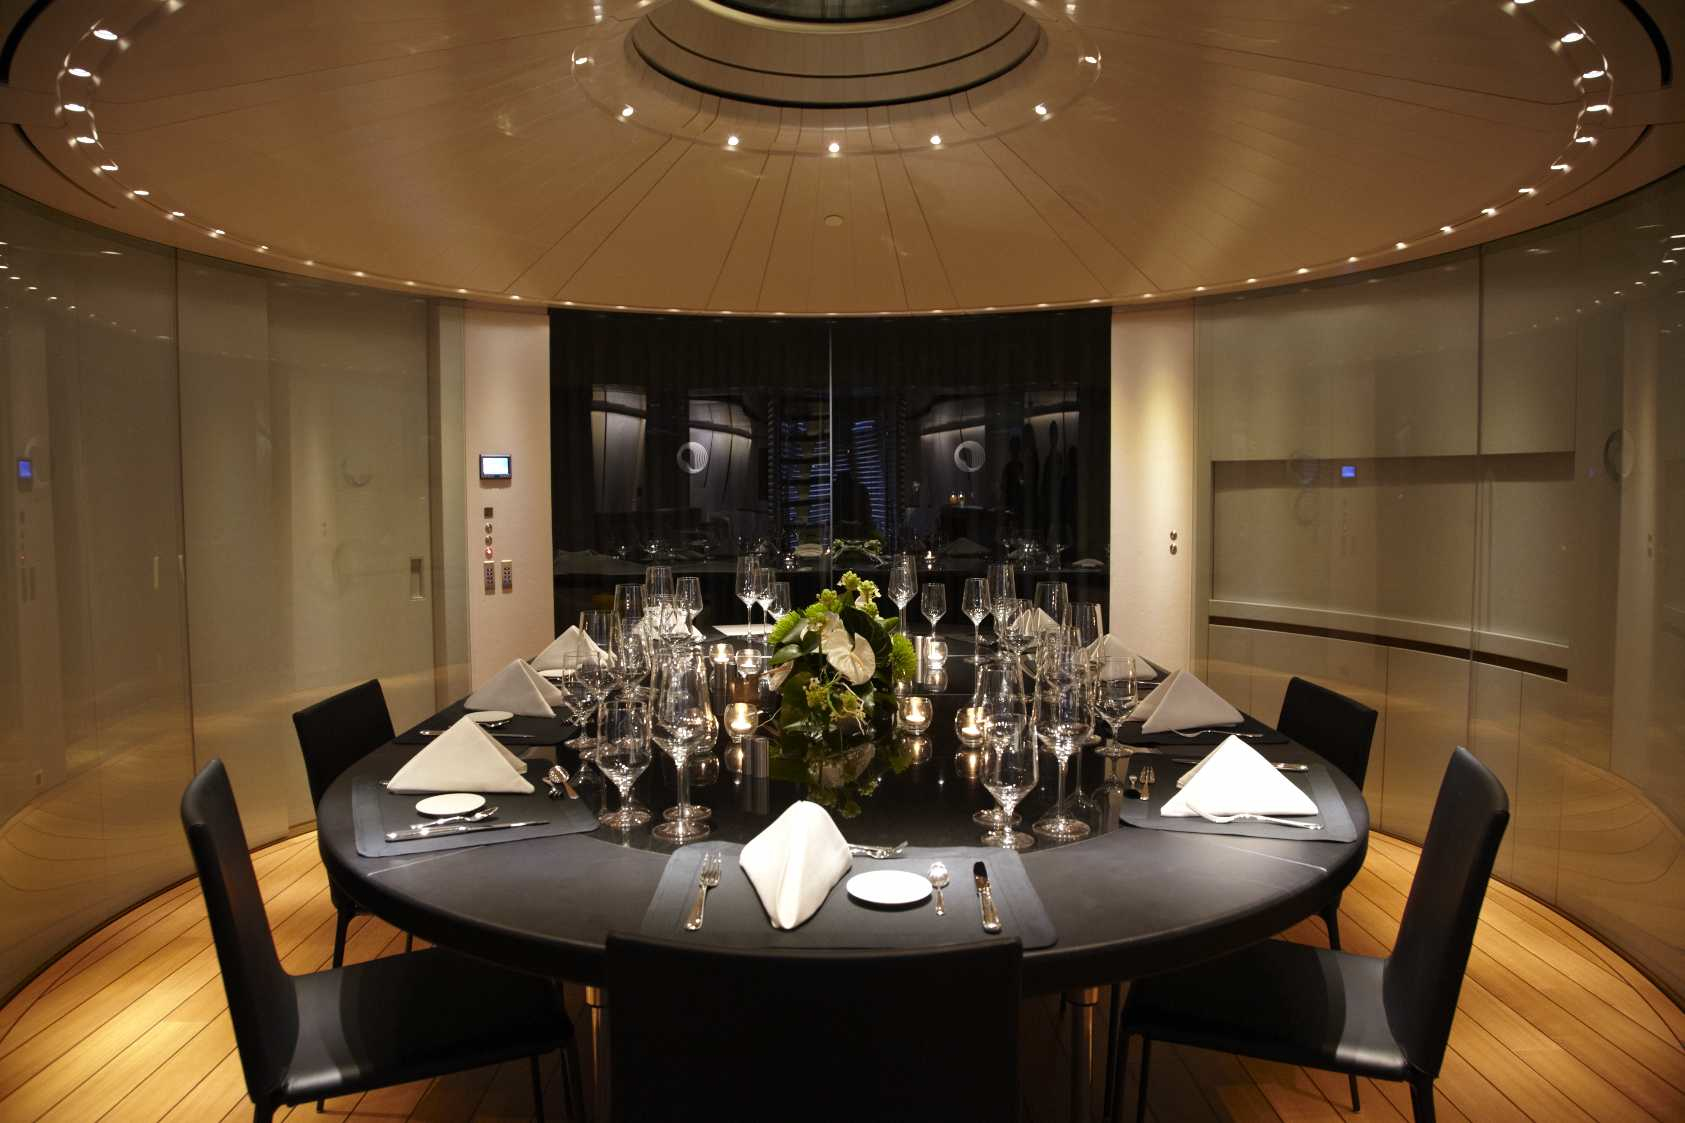 Dining Table Image Gallery Luxury Yacht Gallery Browser